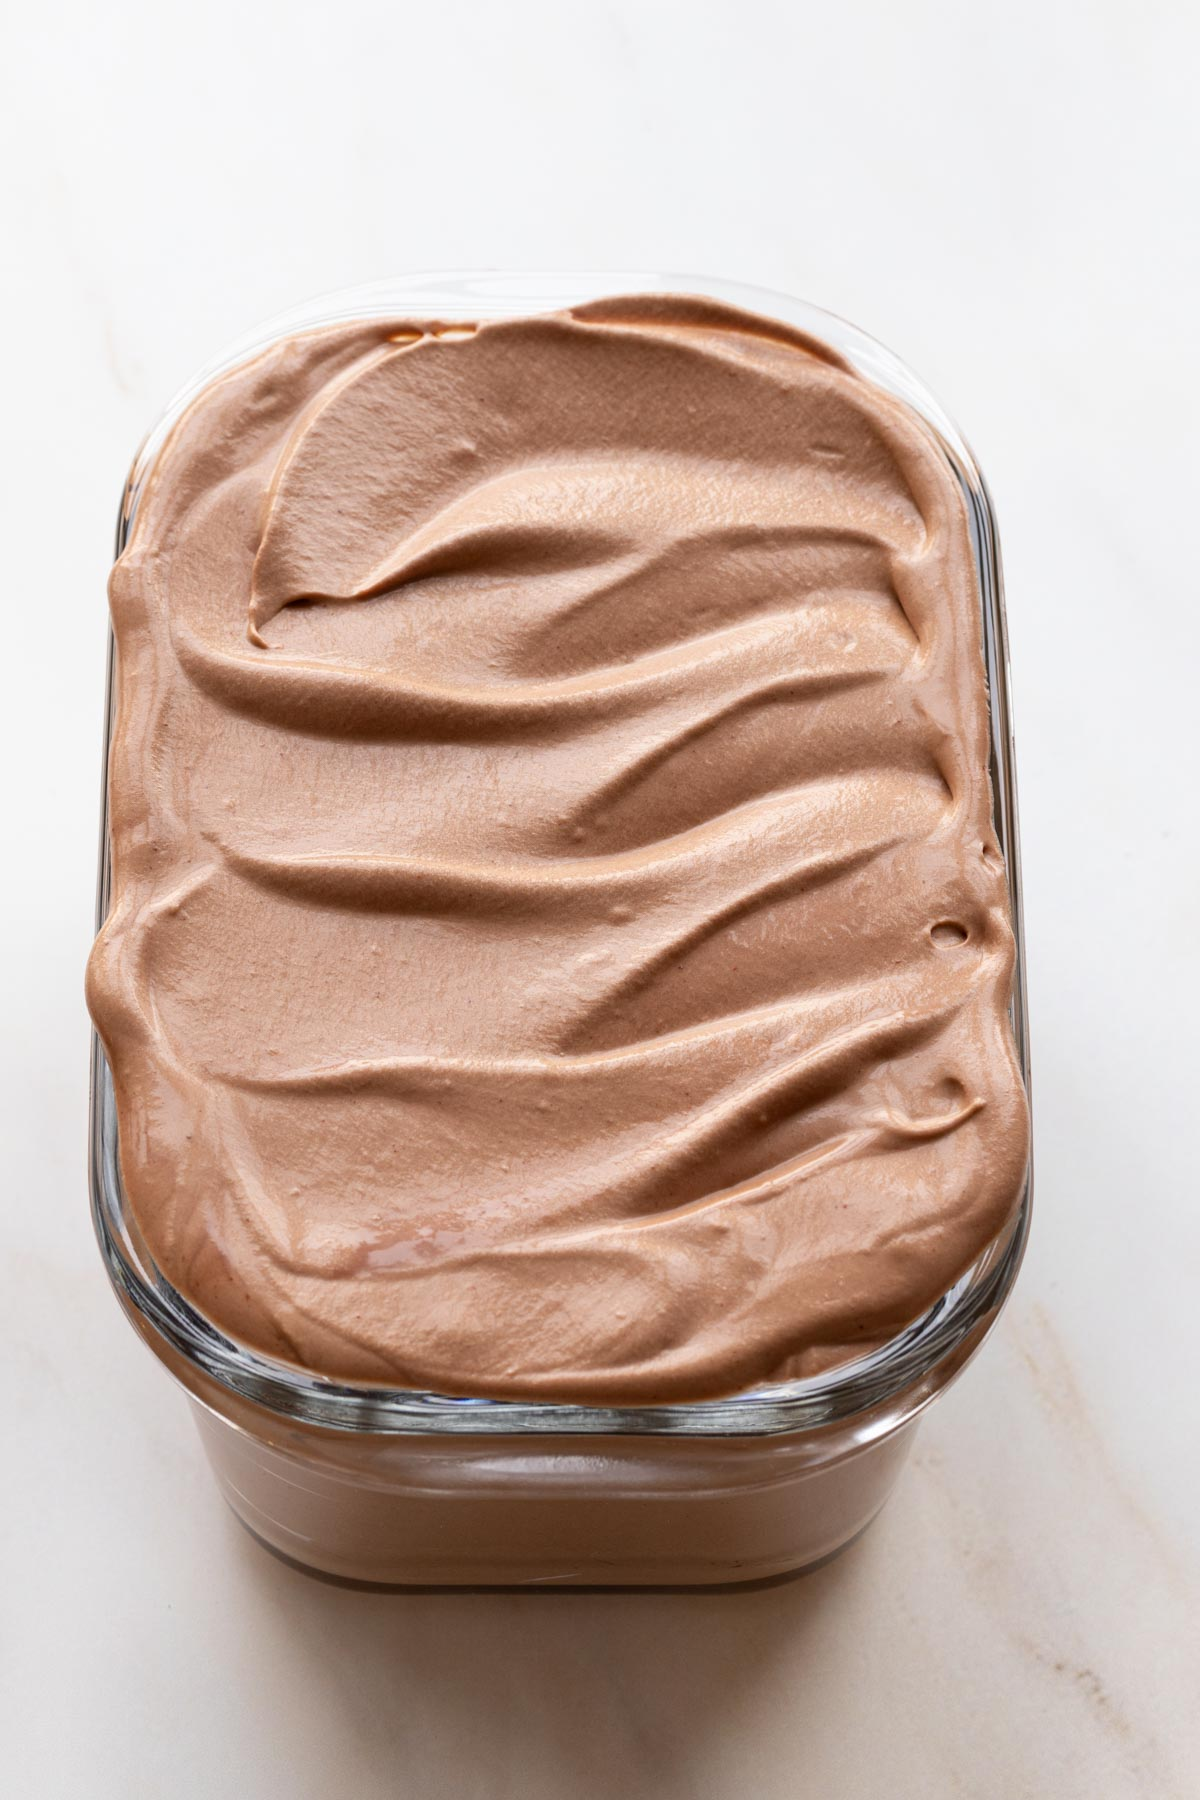 Chocolate no churn ice cream base in a glass container